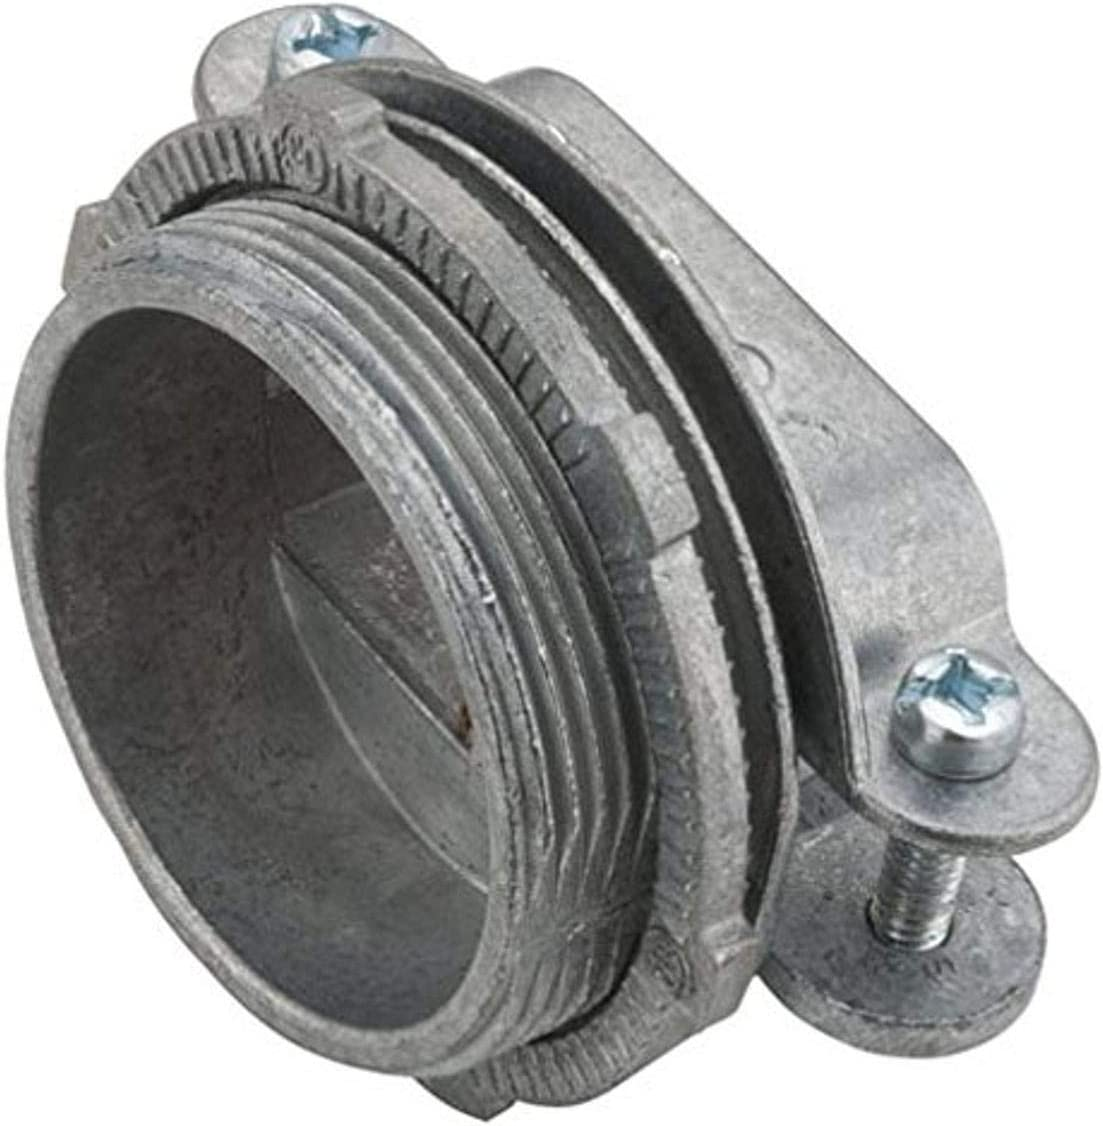 Hubbell-Raco 4761B5 Nm 2-Piece Clamp Connector 5-Pack 3//8-Inch